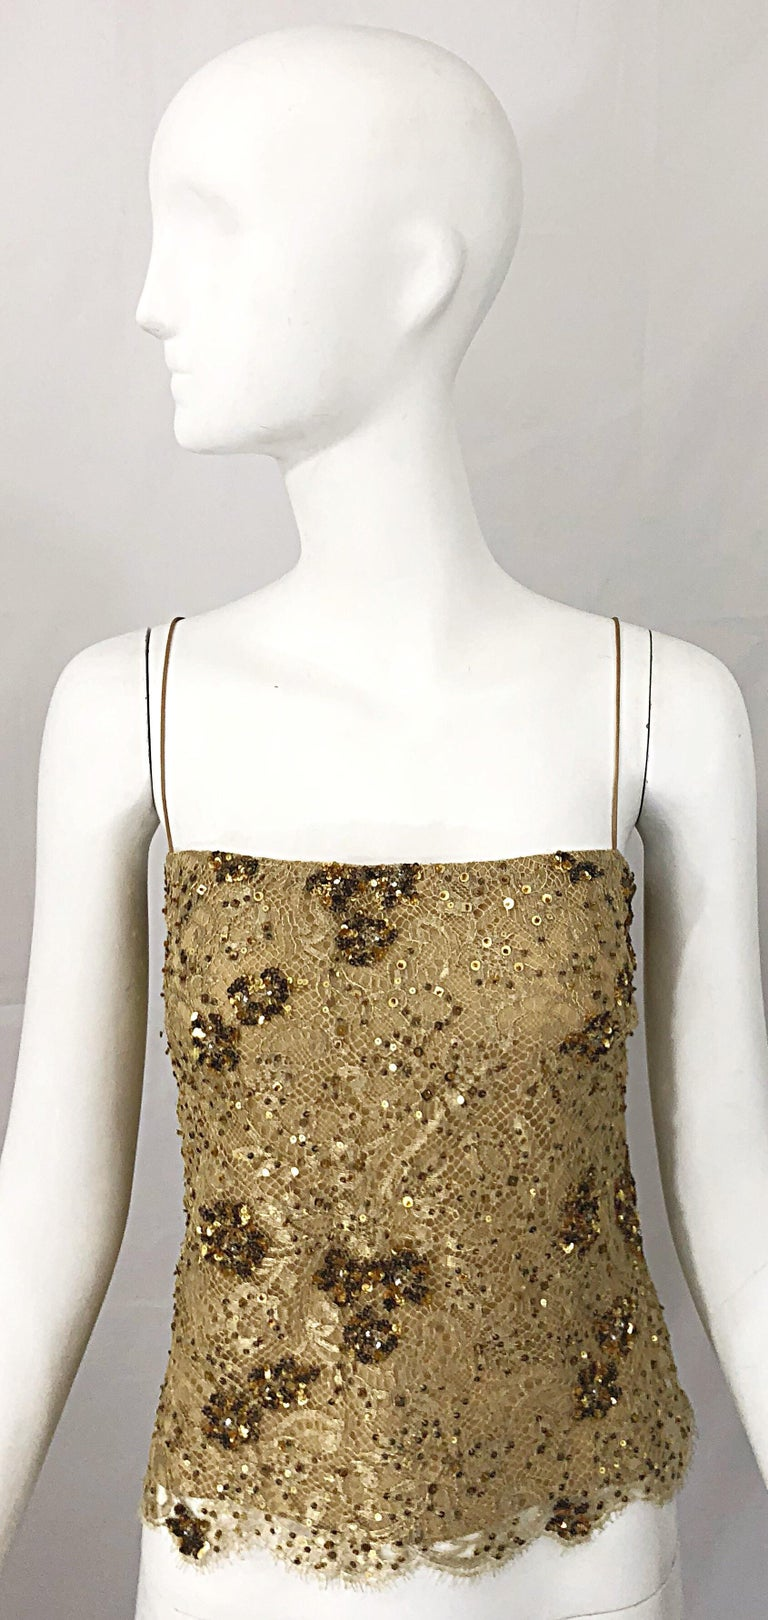 1990s Badgley Mischka Size 10 / 12 Gold Lace Sequins and Beads Vintage 90s Top For Sale 10